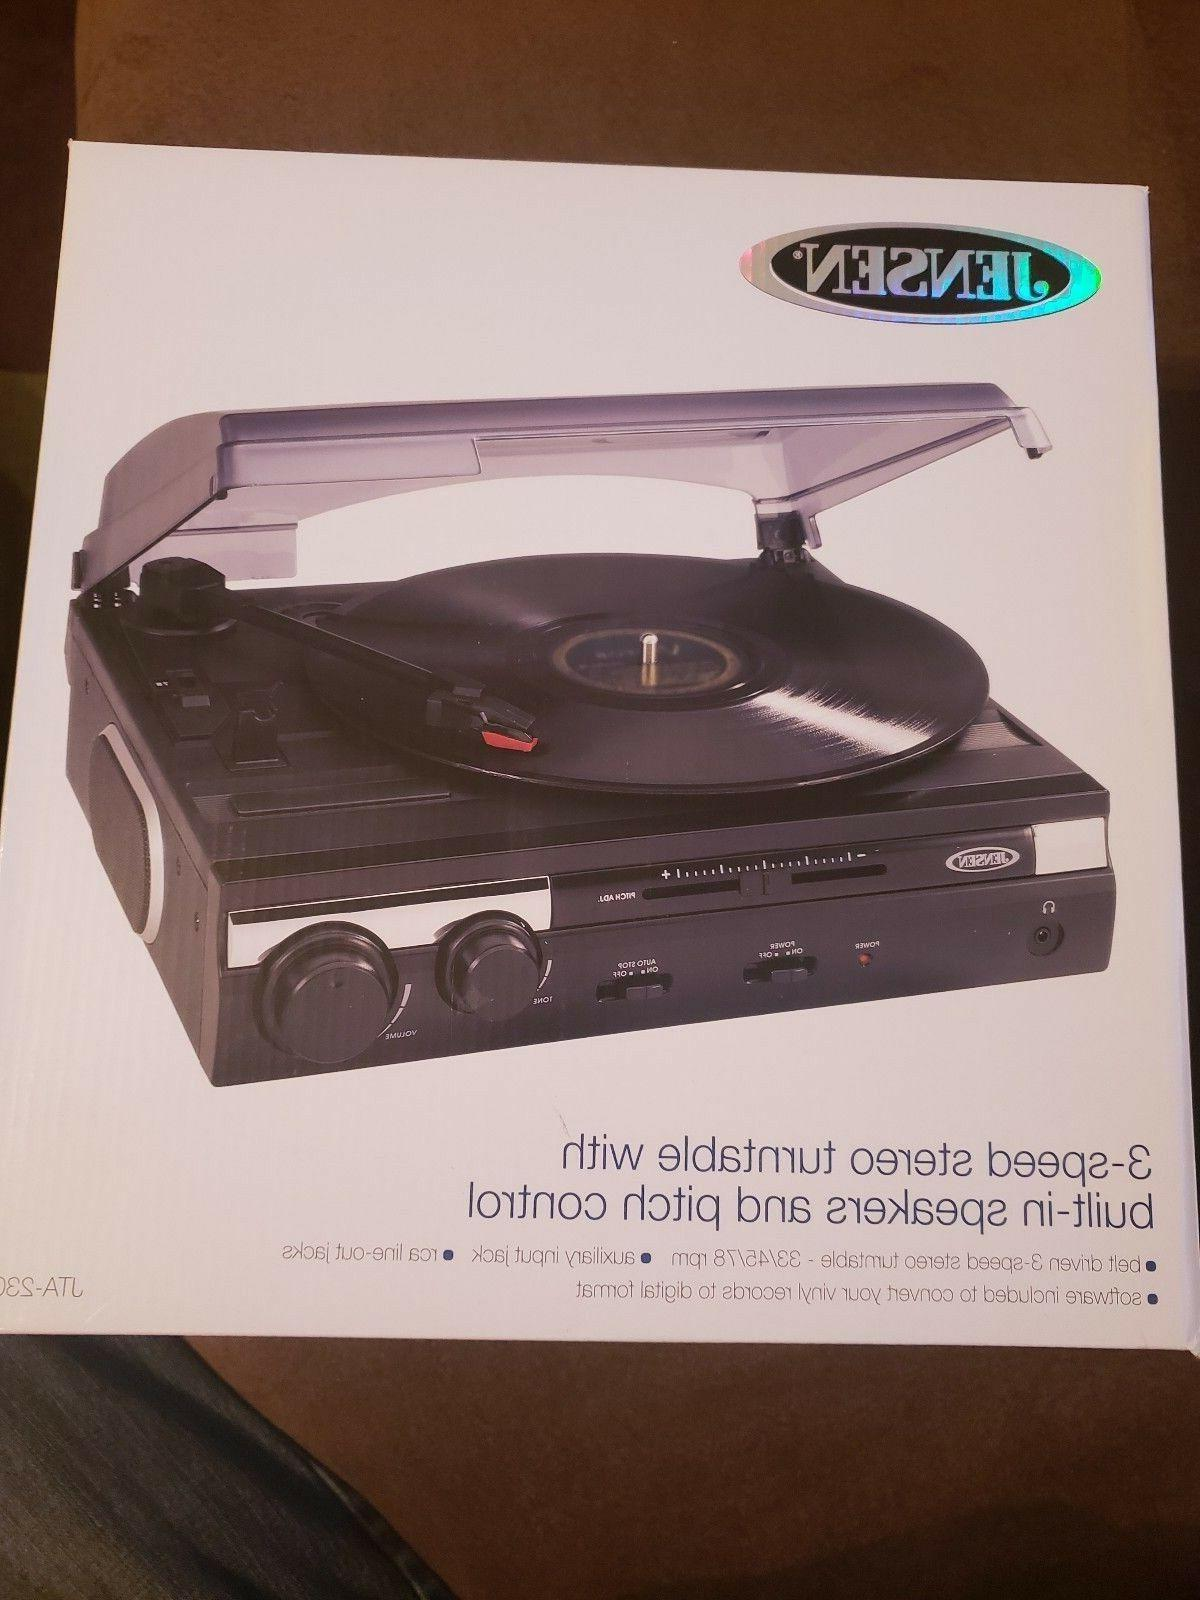 jta 230 3 speed stereo turntable record